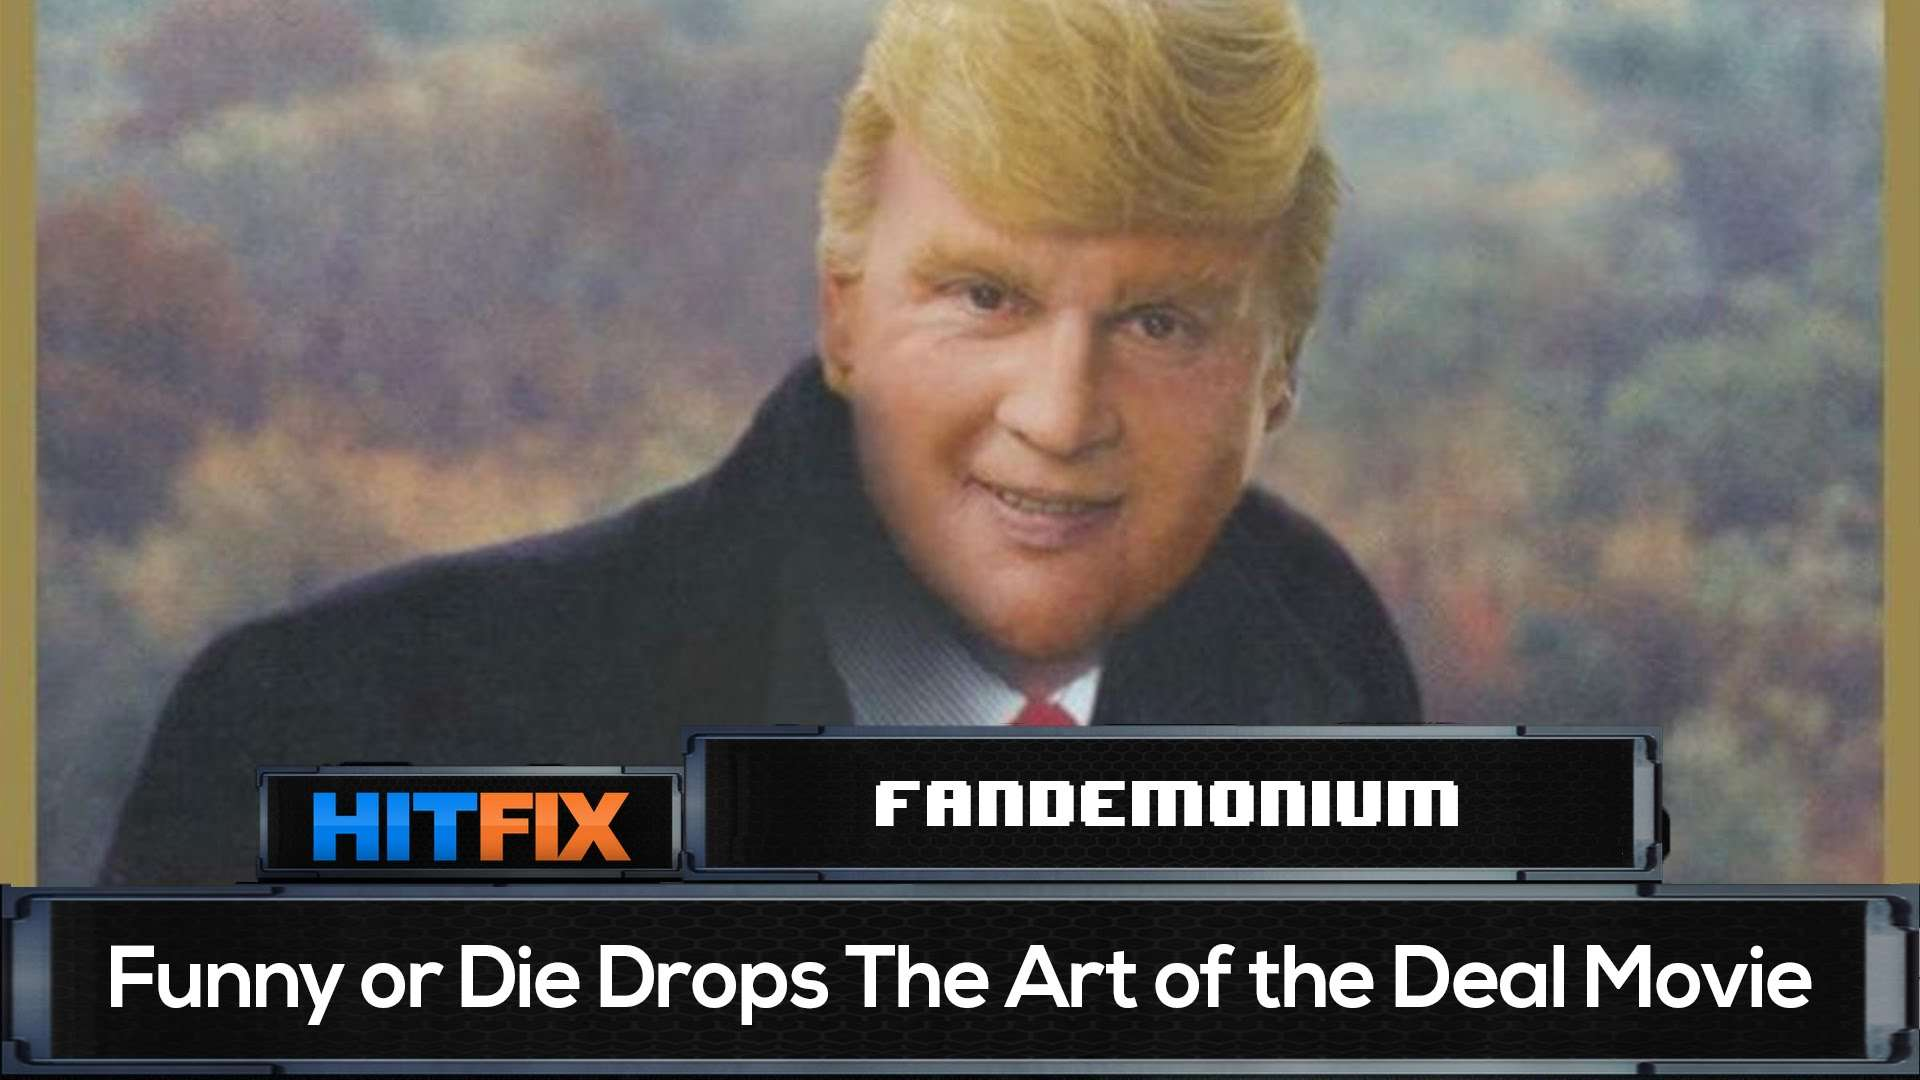 The Art of the Deal: The Movie